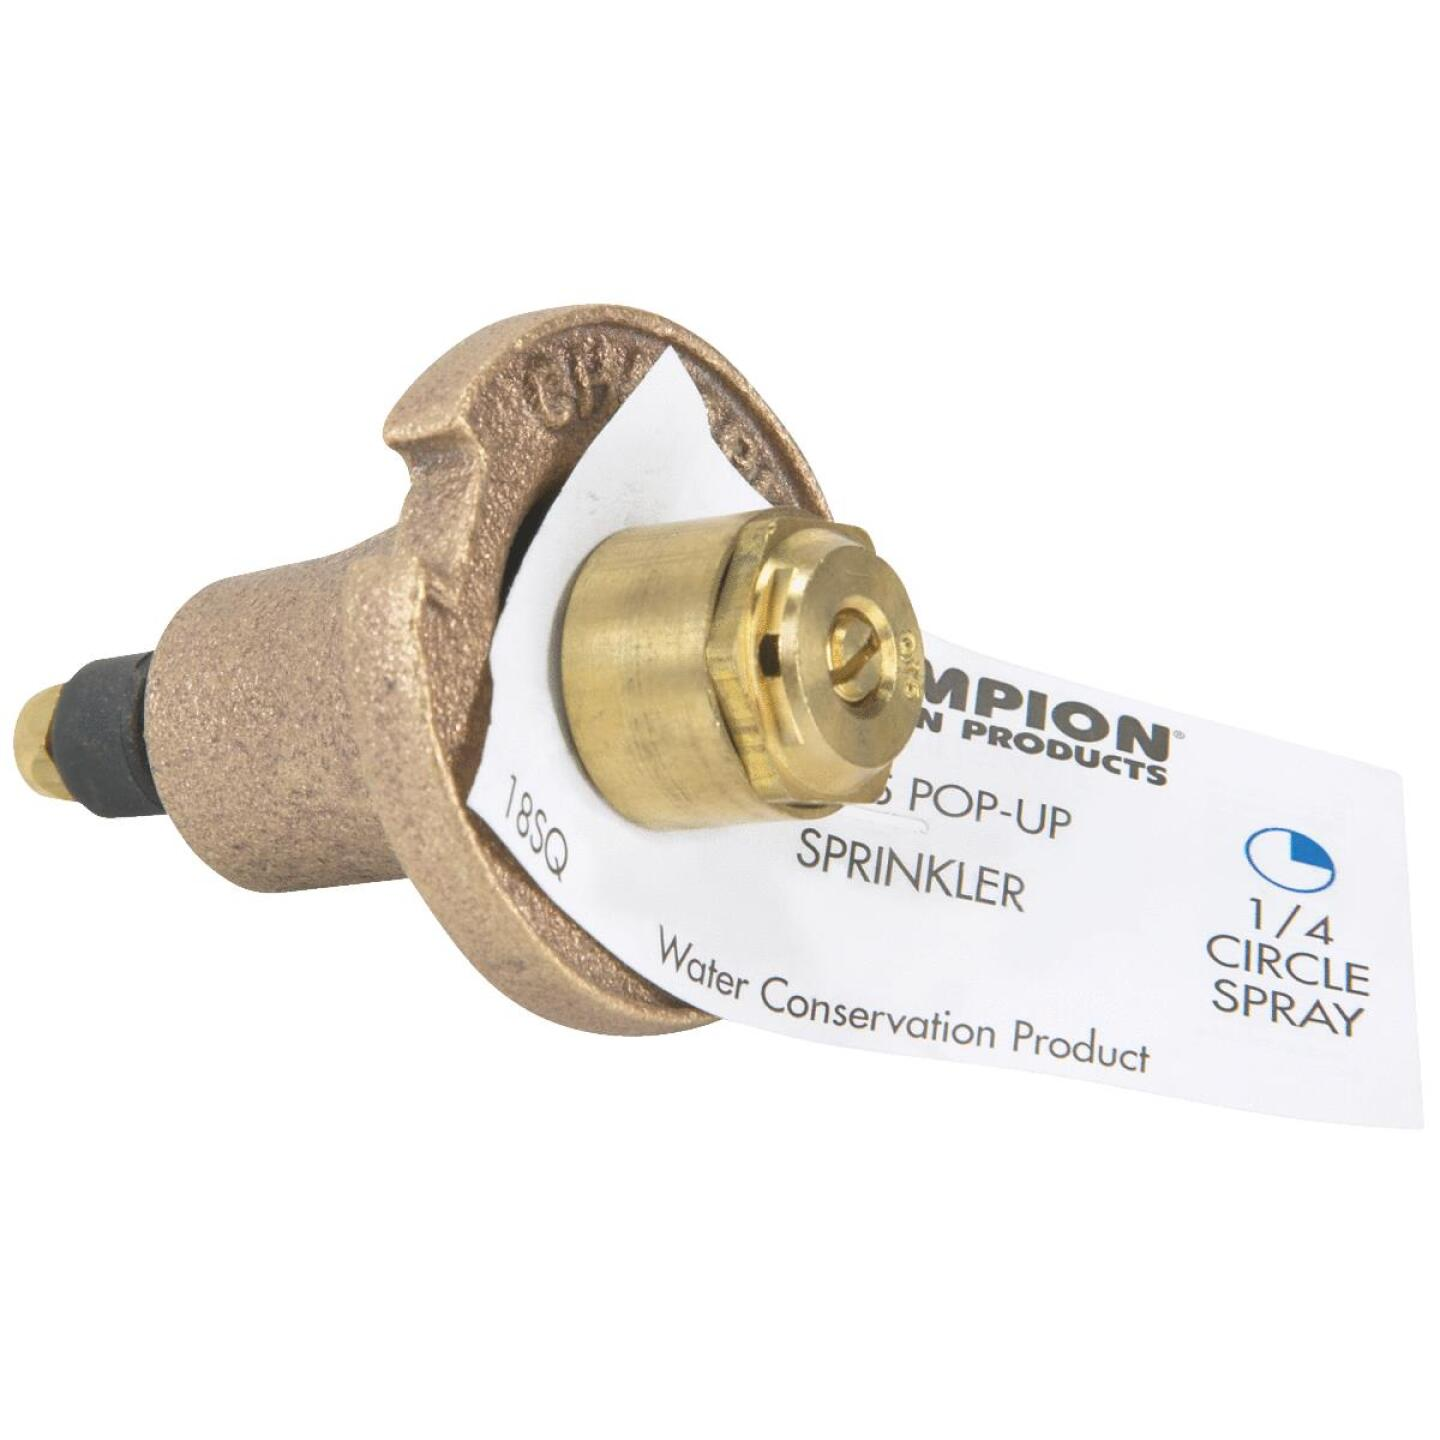 Champion 1.25 In. Quarter Circle Brass Pop-Up Sprinkler with Brass Nozzle Image 2